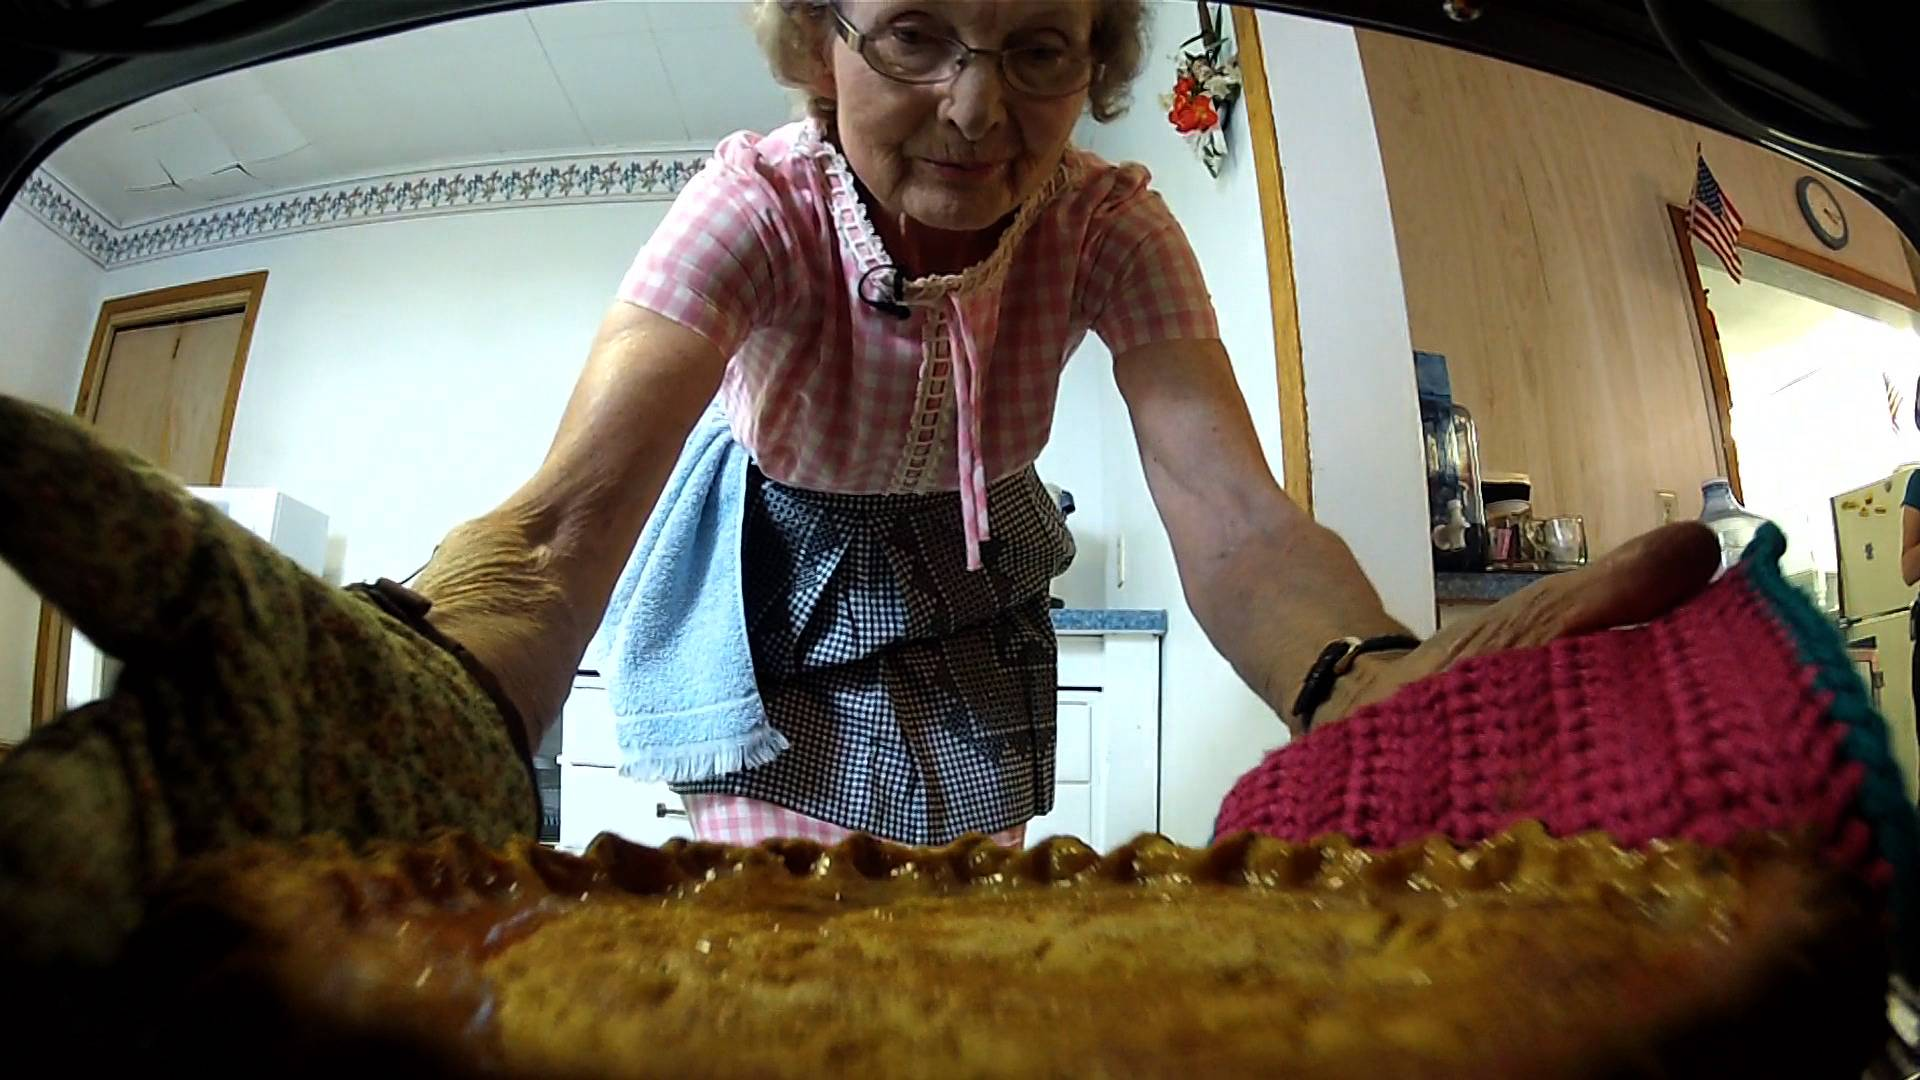 Verna Knapp takes a fresh baked pie out of the oven